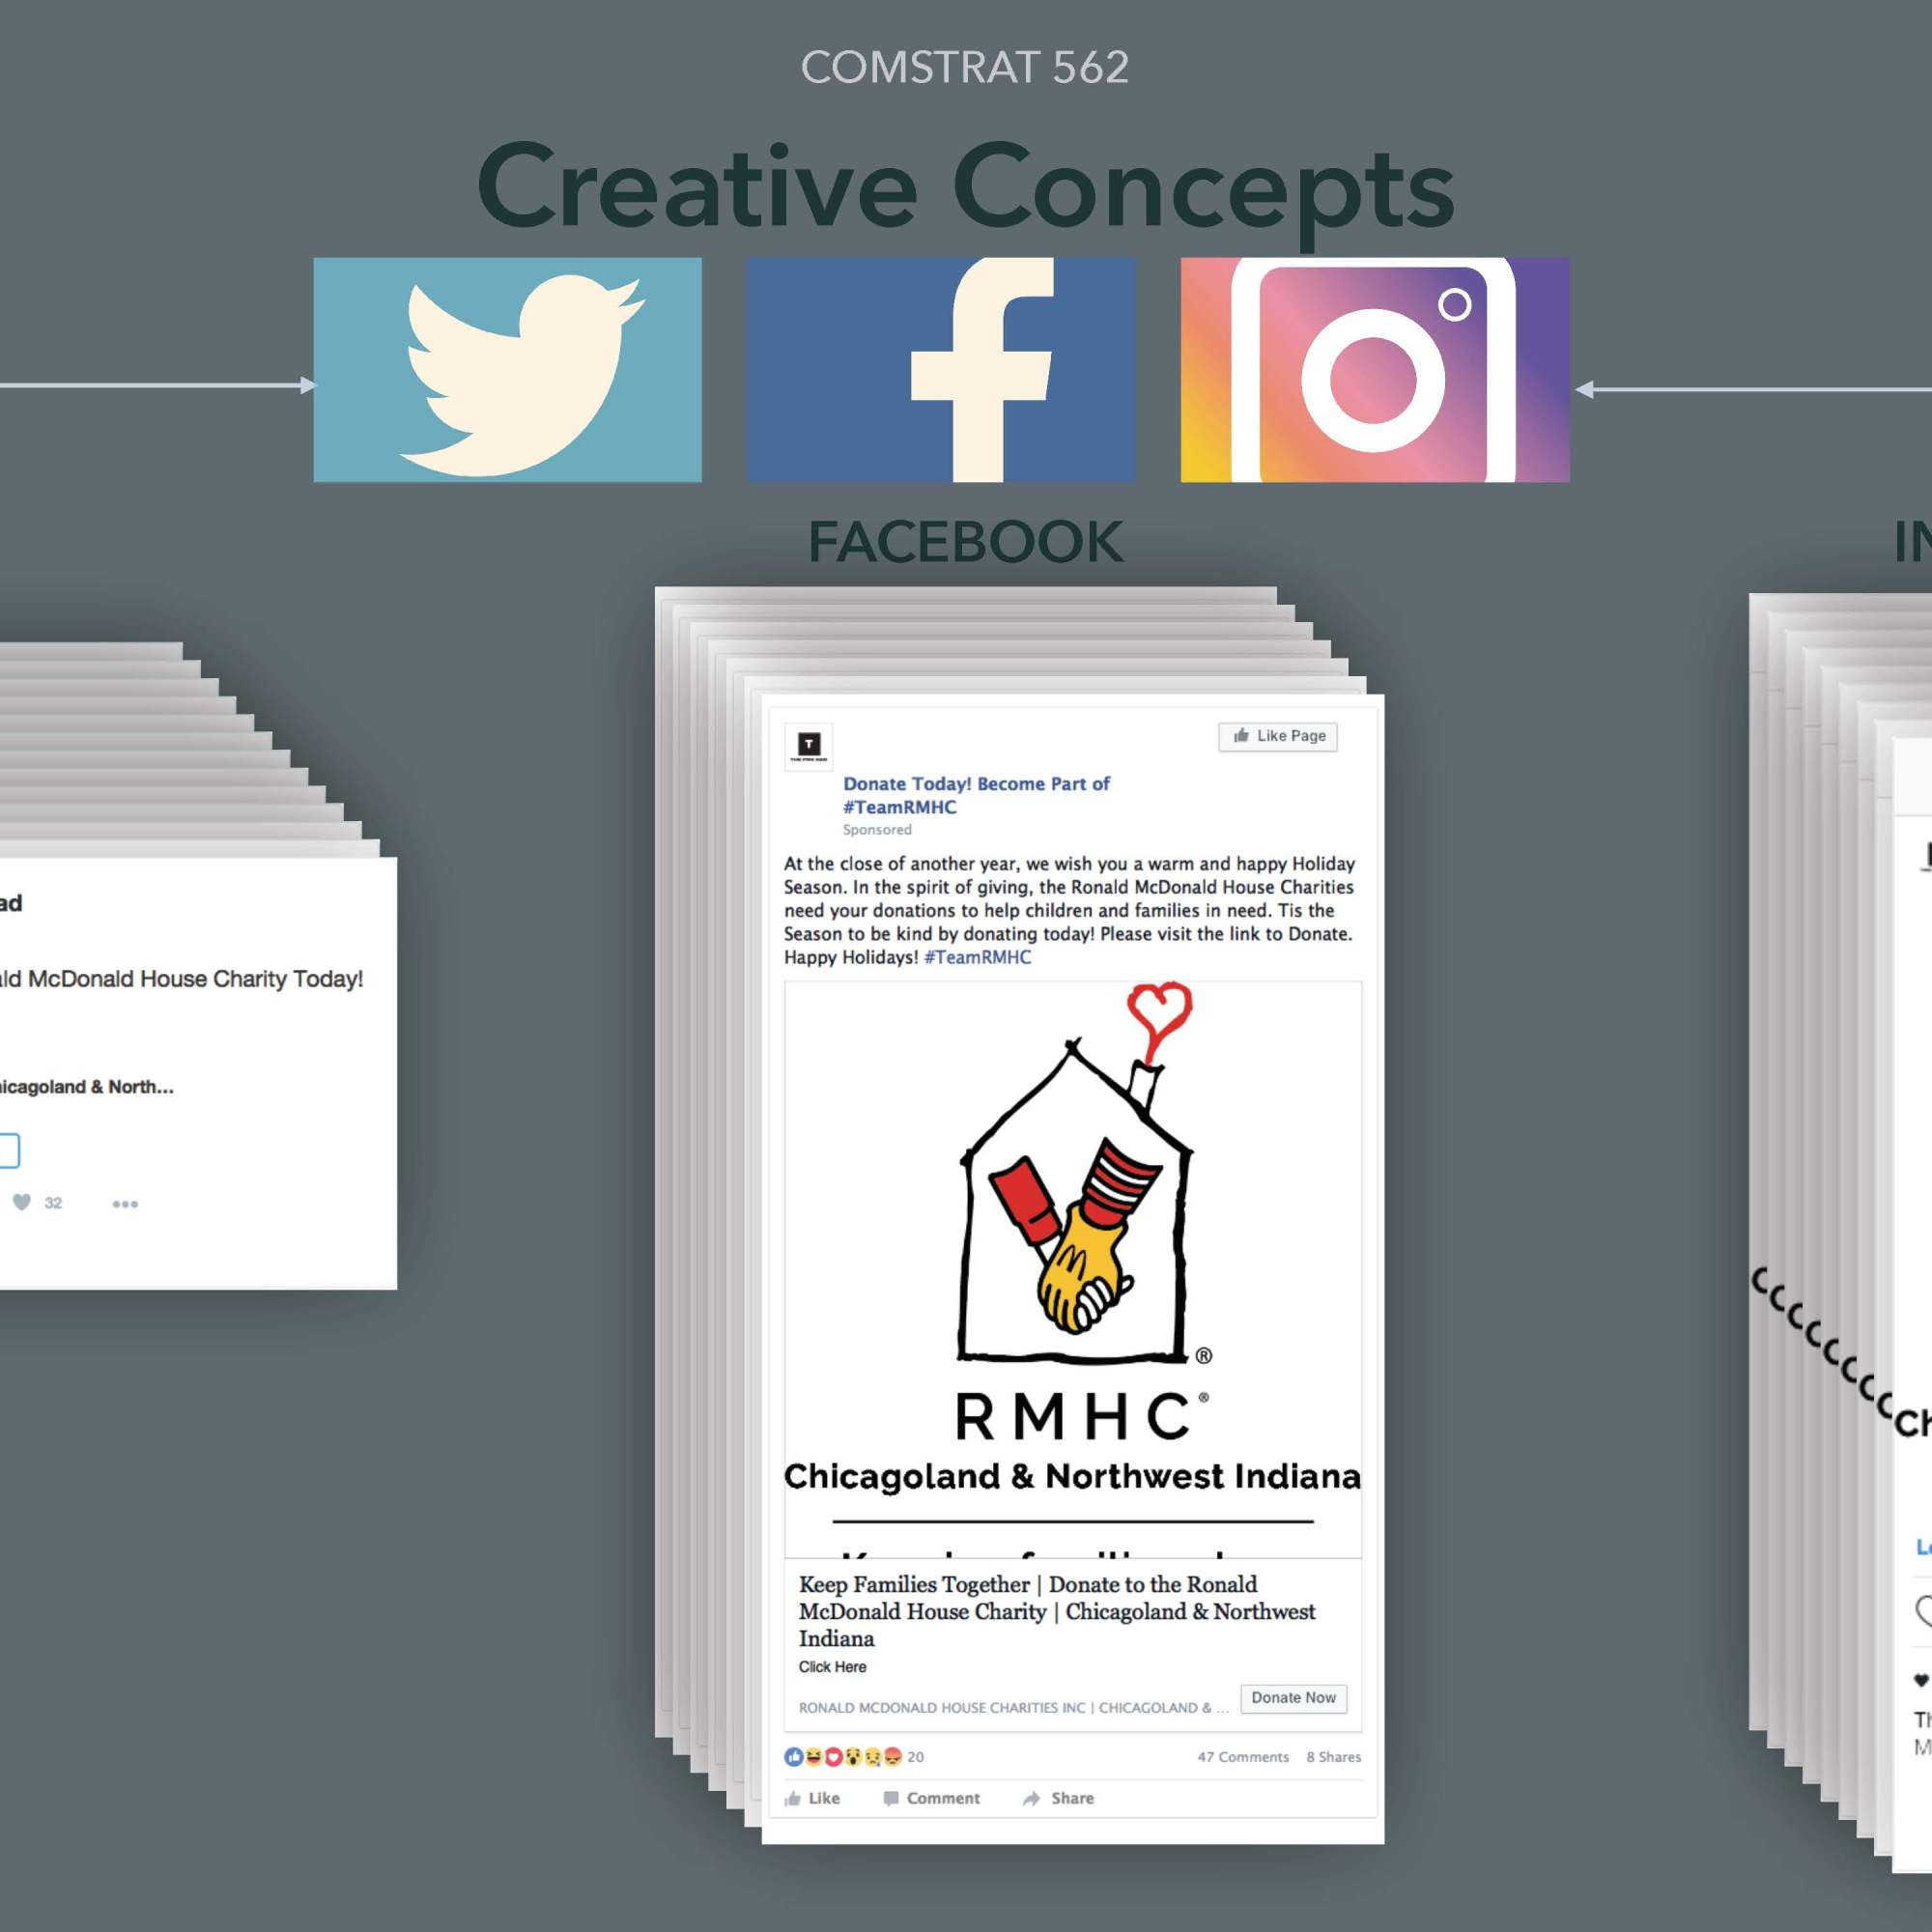 Ronald McDonald House Charities Inc. Creative Concepts